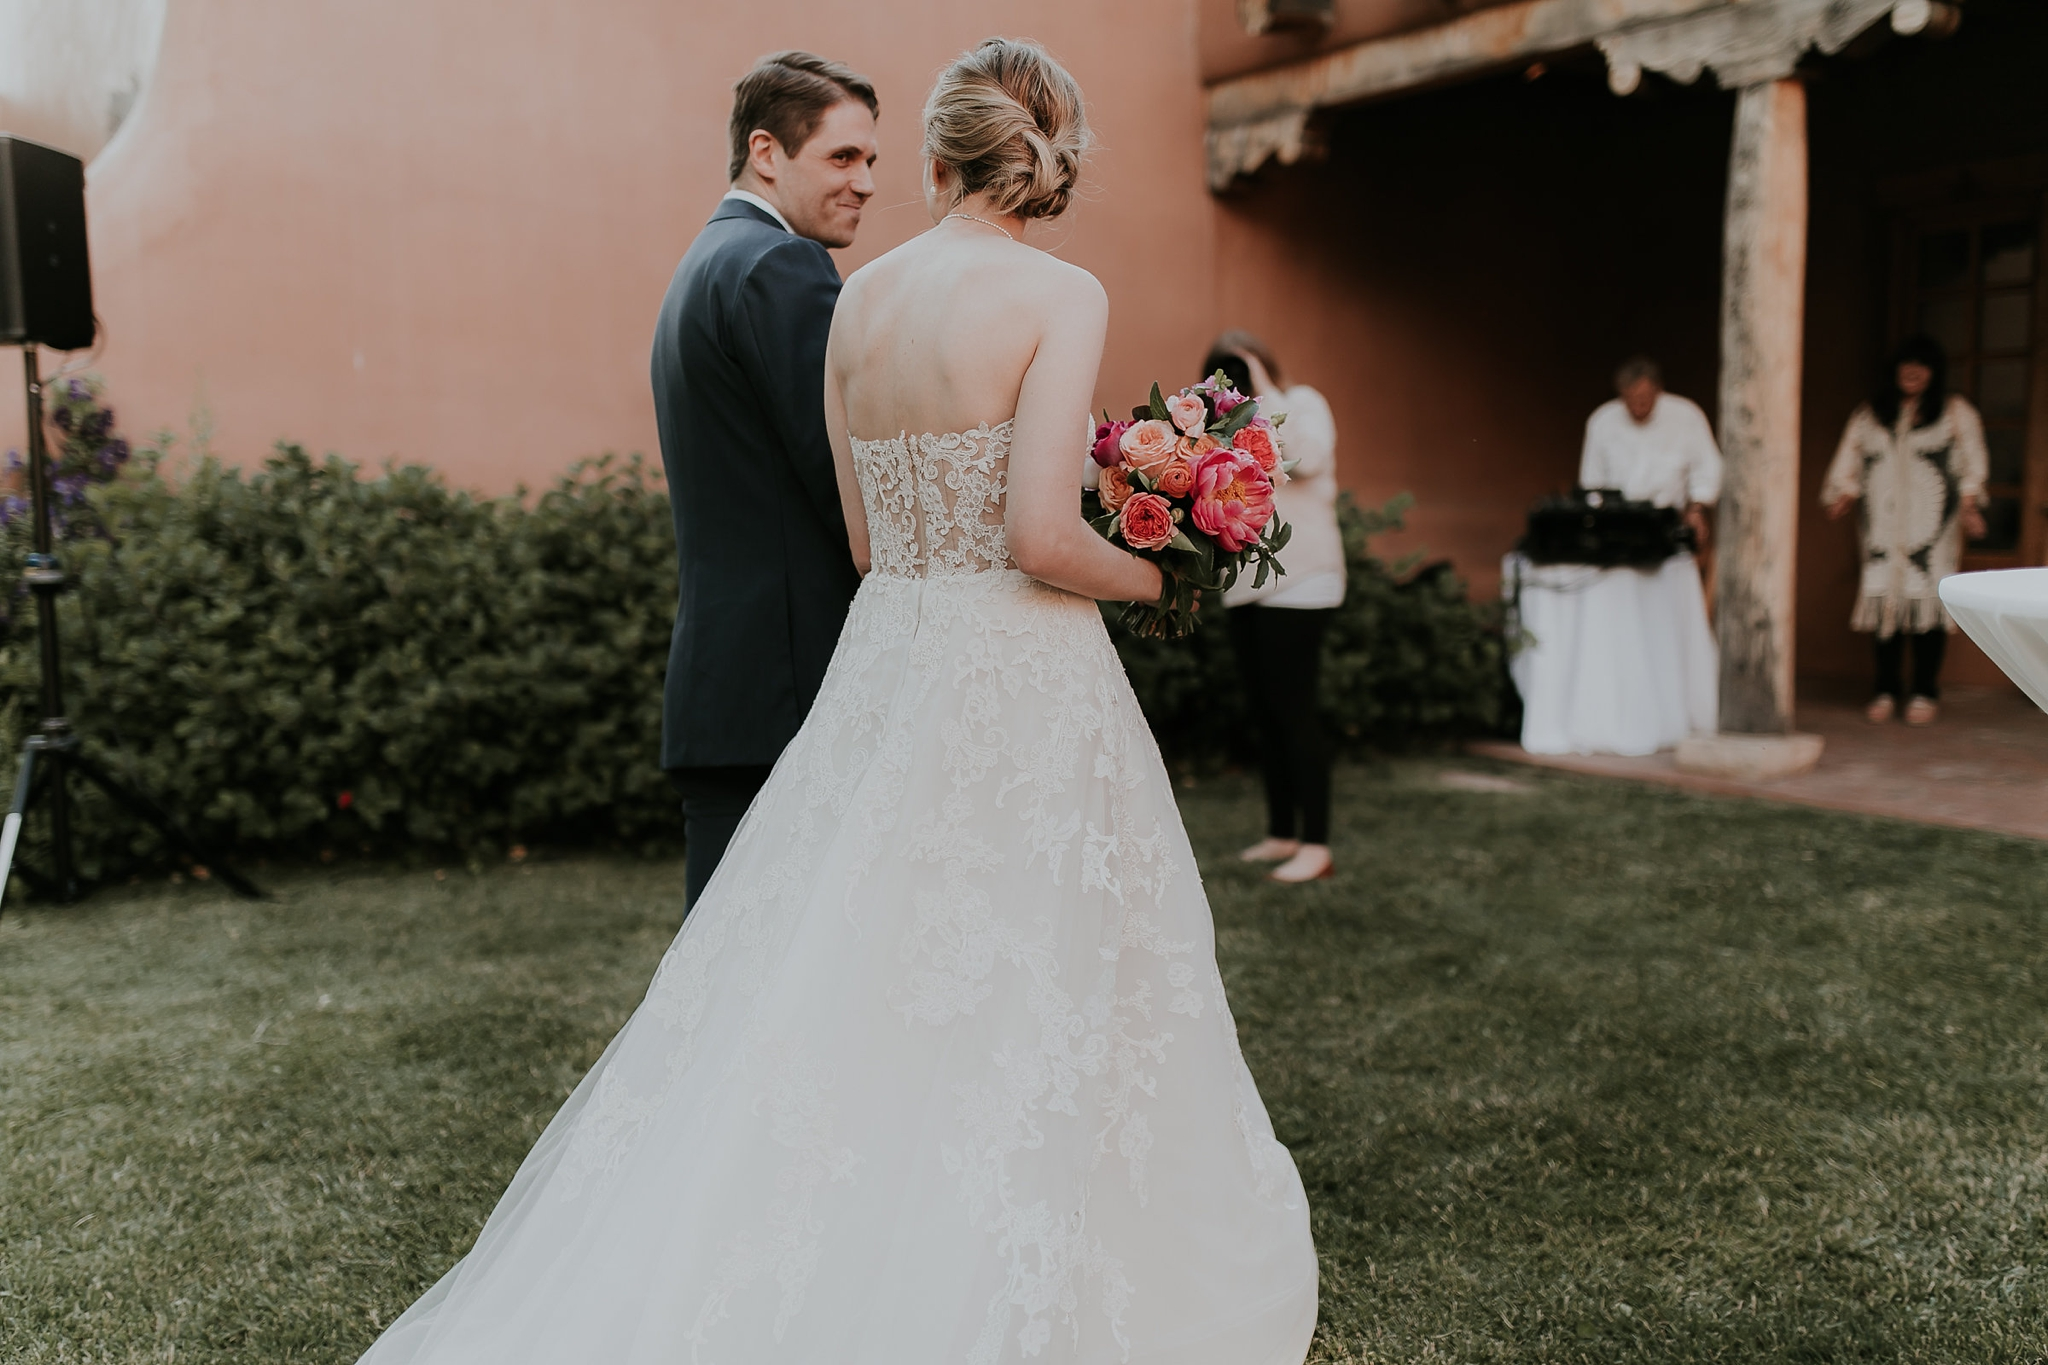 Alicia+lucia+photography+-+albuquerque+wedding+photographer+-+santa+fe+wedding+photography+-+new+mexico+wedding+photographer+-+new+mexico+wedding+-+wedding+photographer+-+wedding+photographer+team_0177.jpg